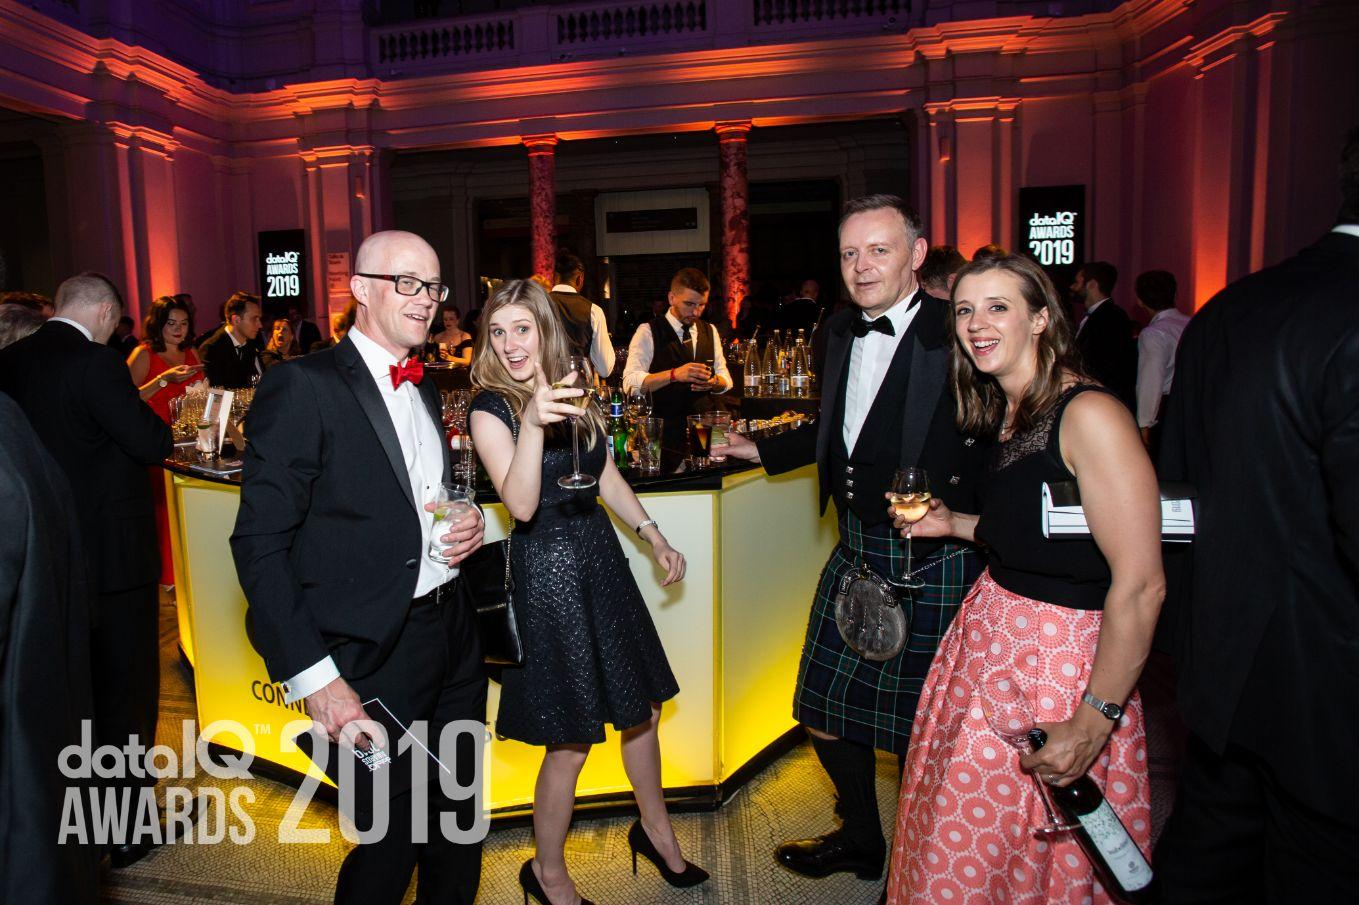 Awards 2019 Image 138